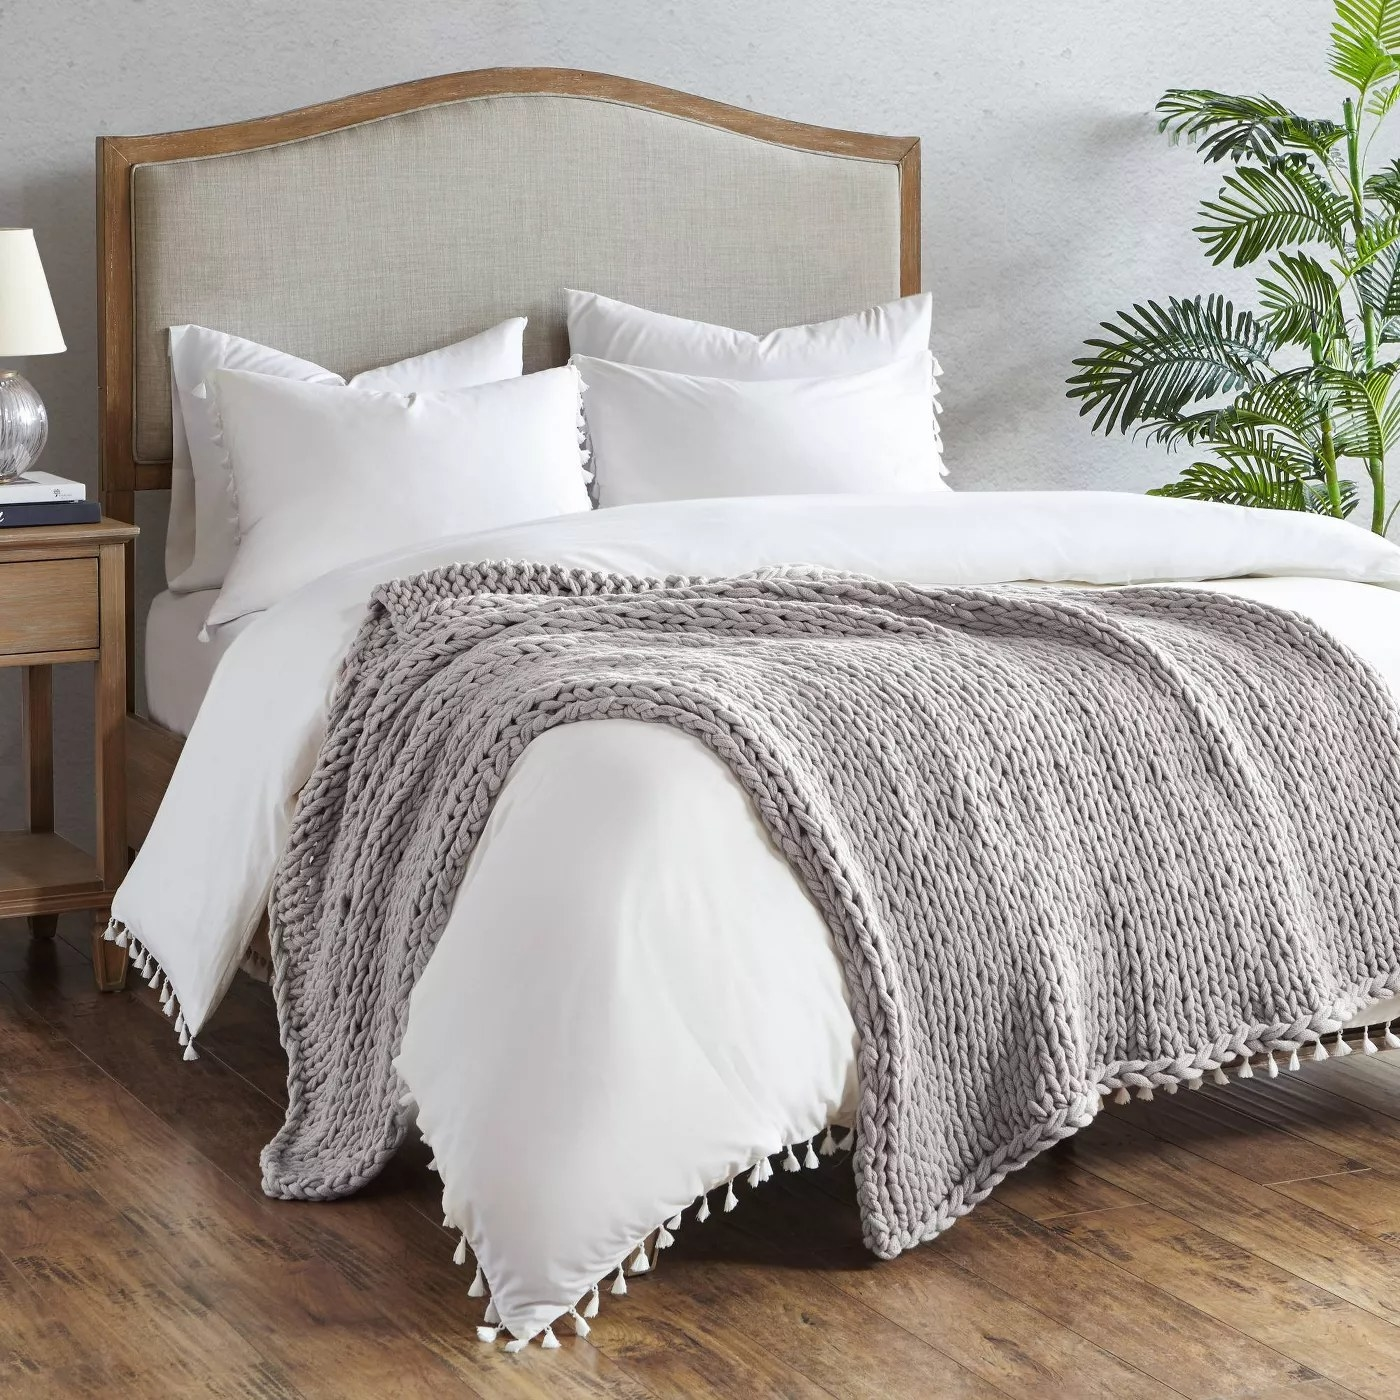 The gray, double-knit blanket